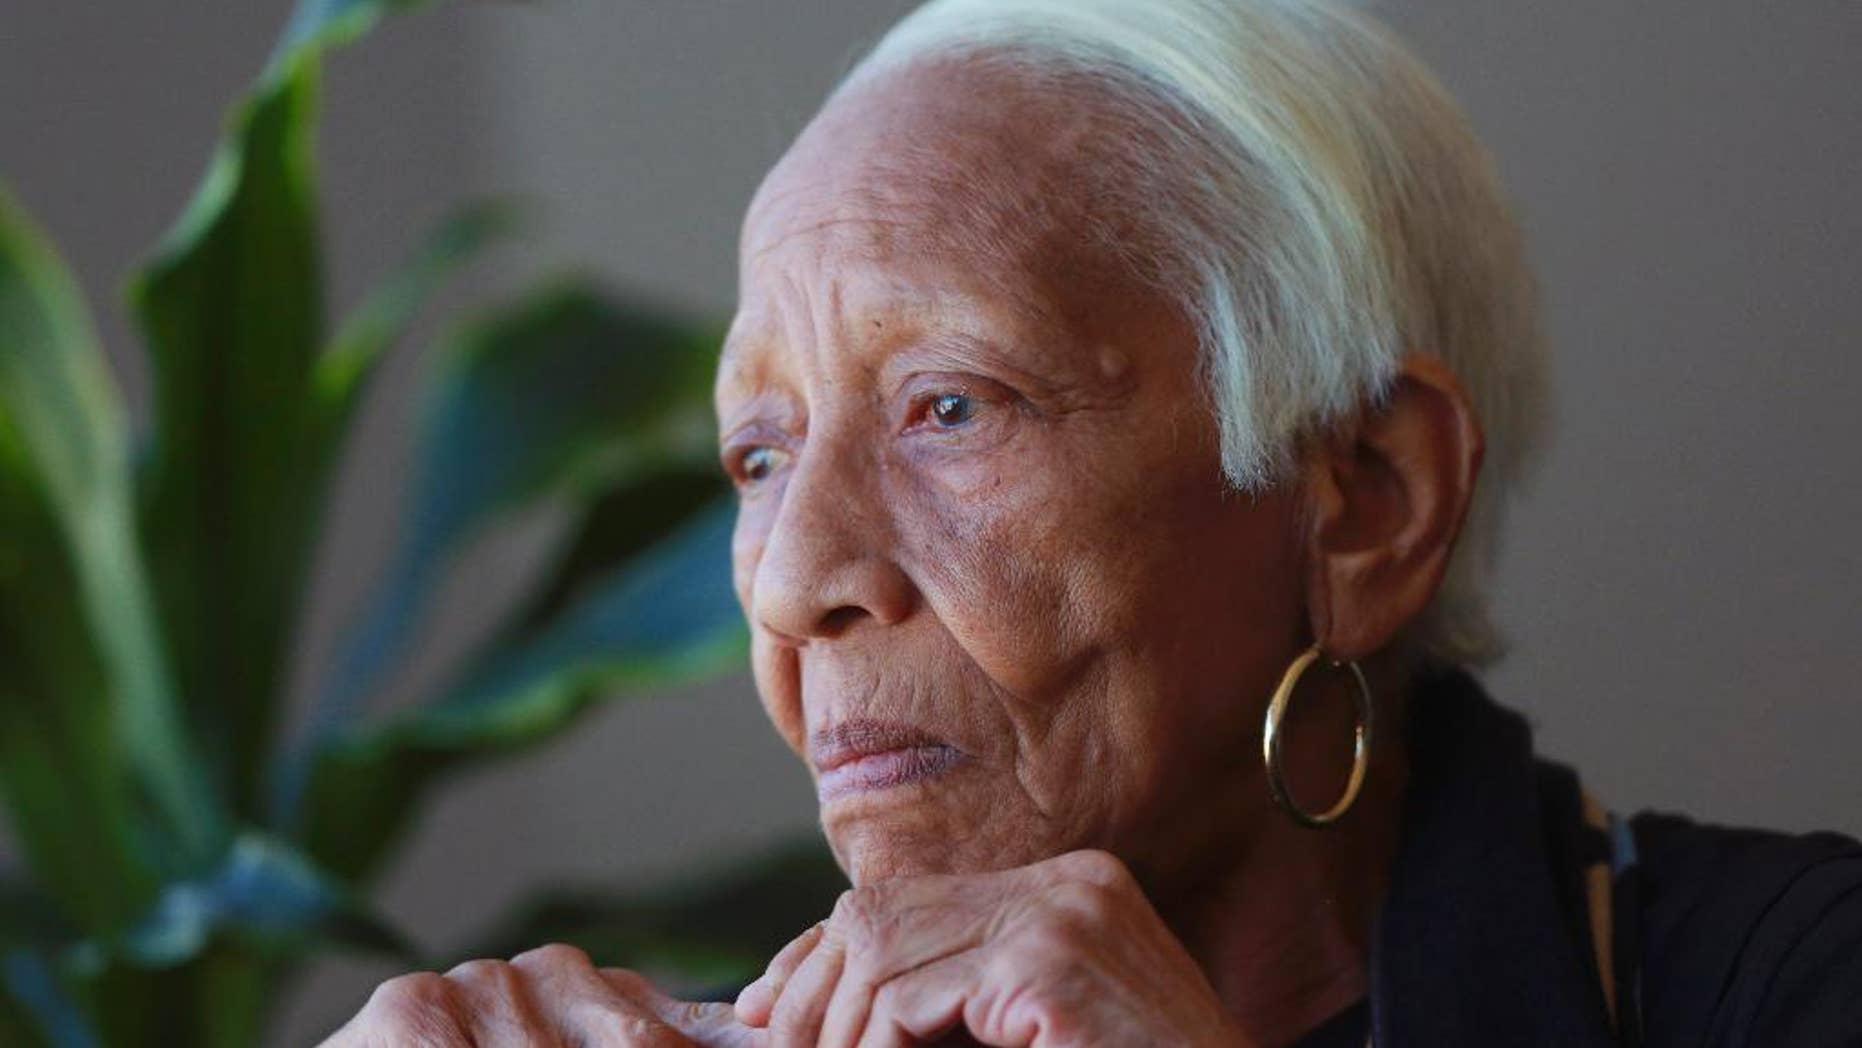 FILE - In this Jan. 11, 2016, file photo, Doris Payne speaks during an interview in Atlanta. Payne, a well-known jewel thief who reflected on her six-decade criminal career in a 2013 documentary, has been deemed too ill to stand trial for an alleged 2015 theft. The Atlanta Journal-Constitution reported Payne's trial was scheduled to start Feb. 21, 2017, in connection with the theft of a pair of Christian Dior earrings from a Saks Fifth Avenue store. (AP Photo/John Bazemore, File)